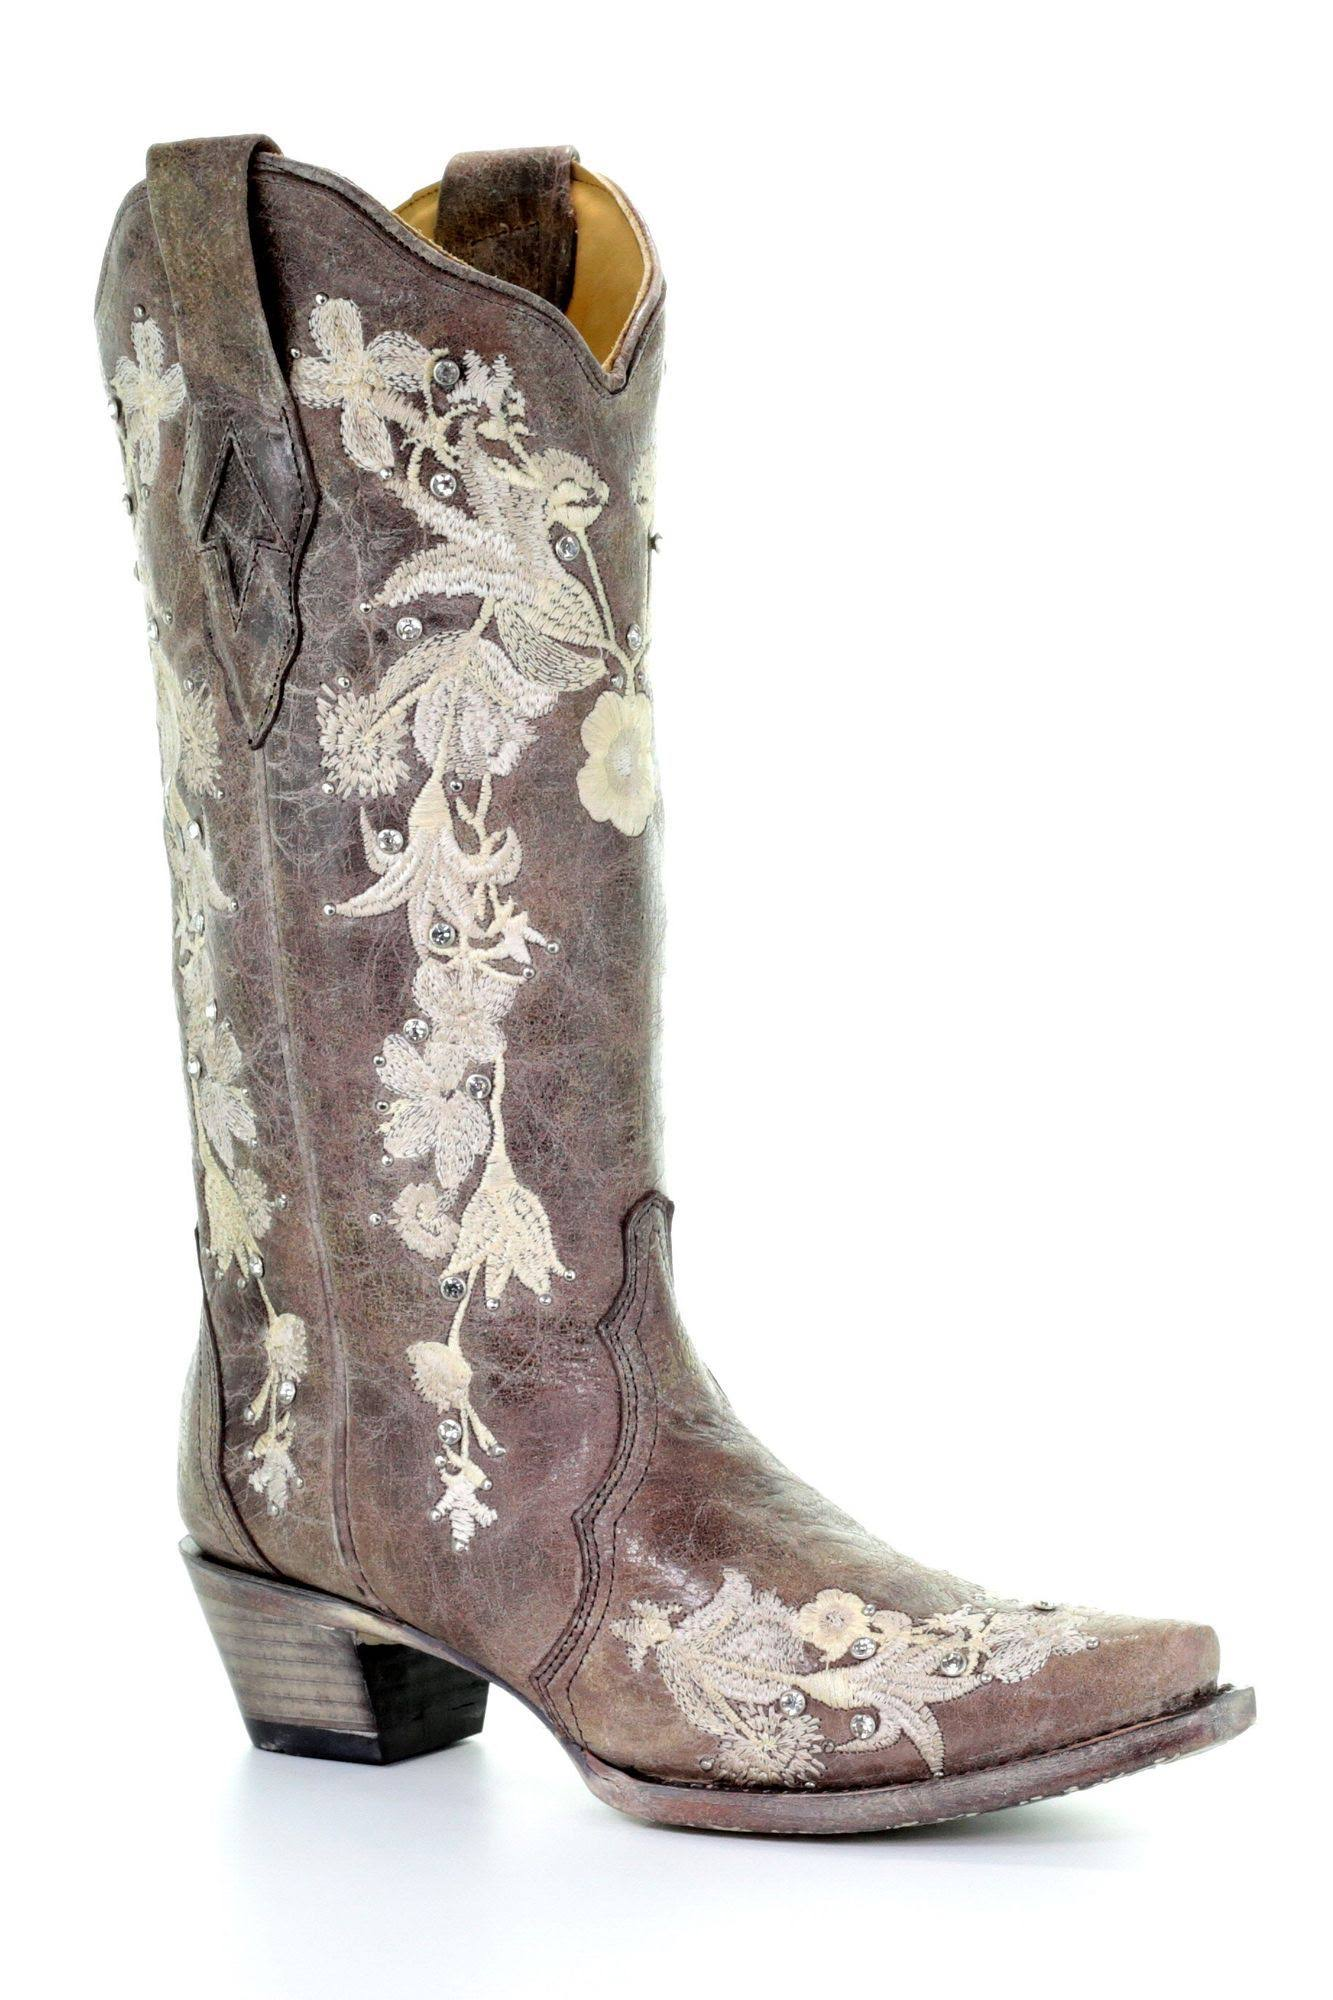 Corral Women's Flower Embroidery Western Boots - Snip Toe - Coffee / 10 W